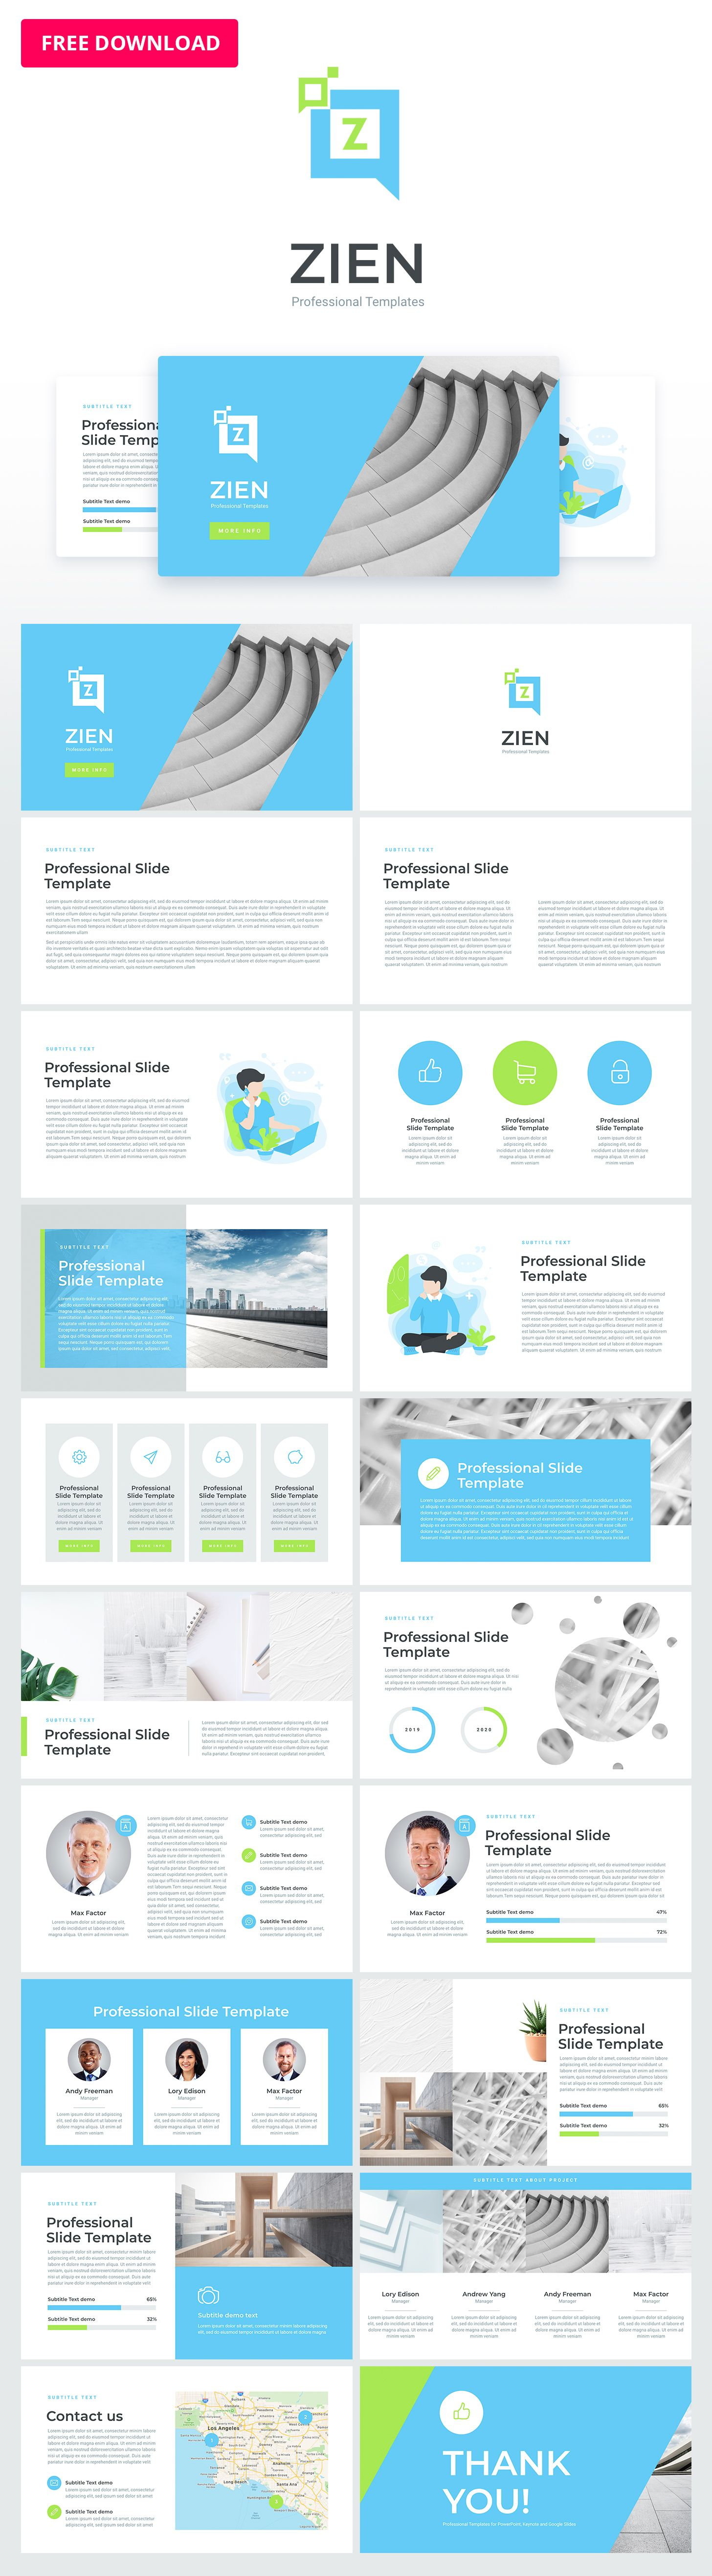 Zien Animated Powerpoint Template Powerpoint Template